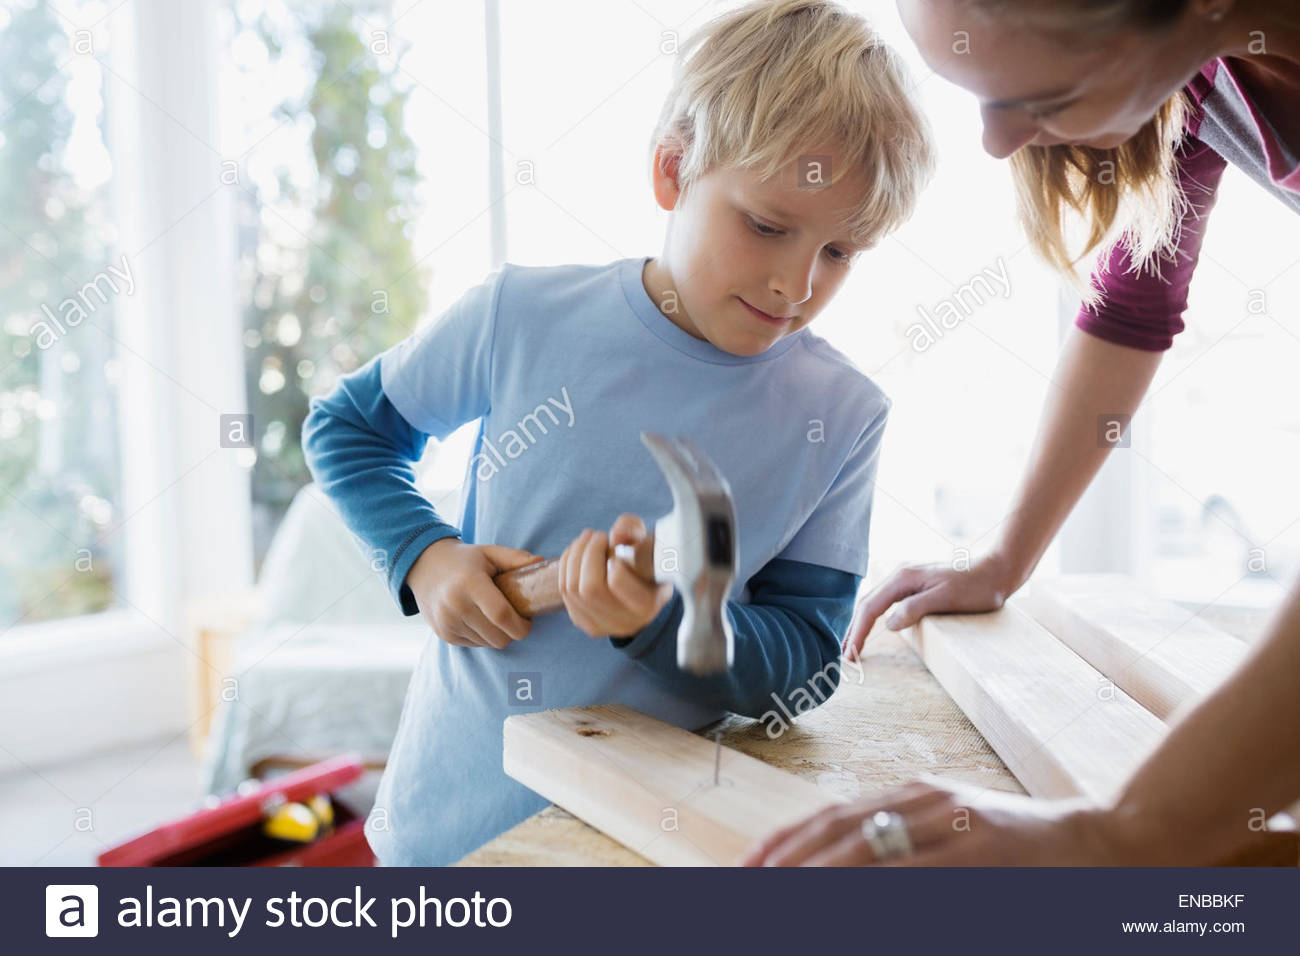 Mother helping son hammer nail into wood trim - Stock Image